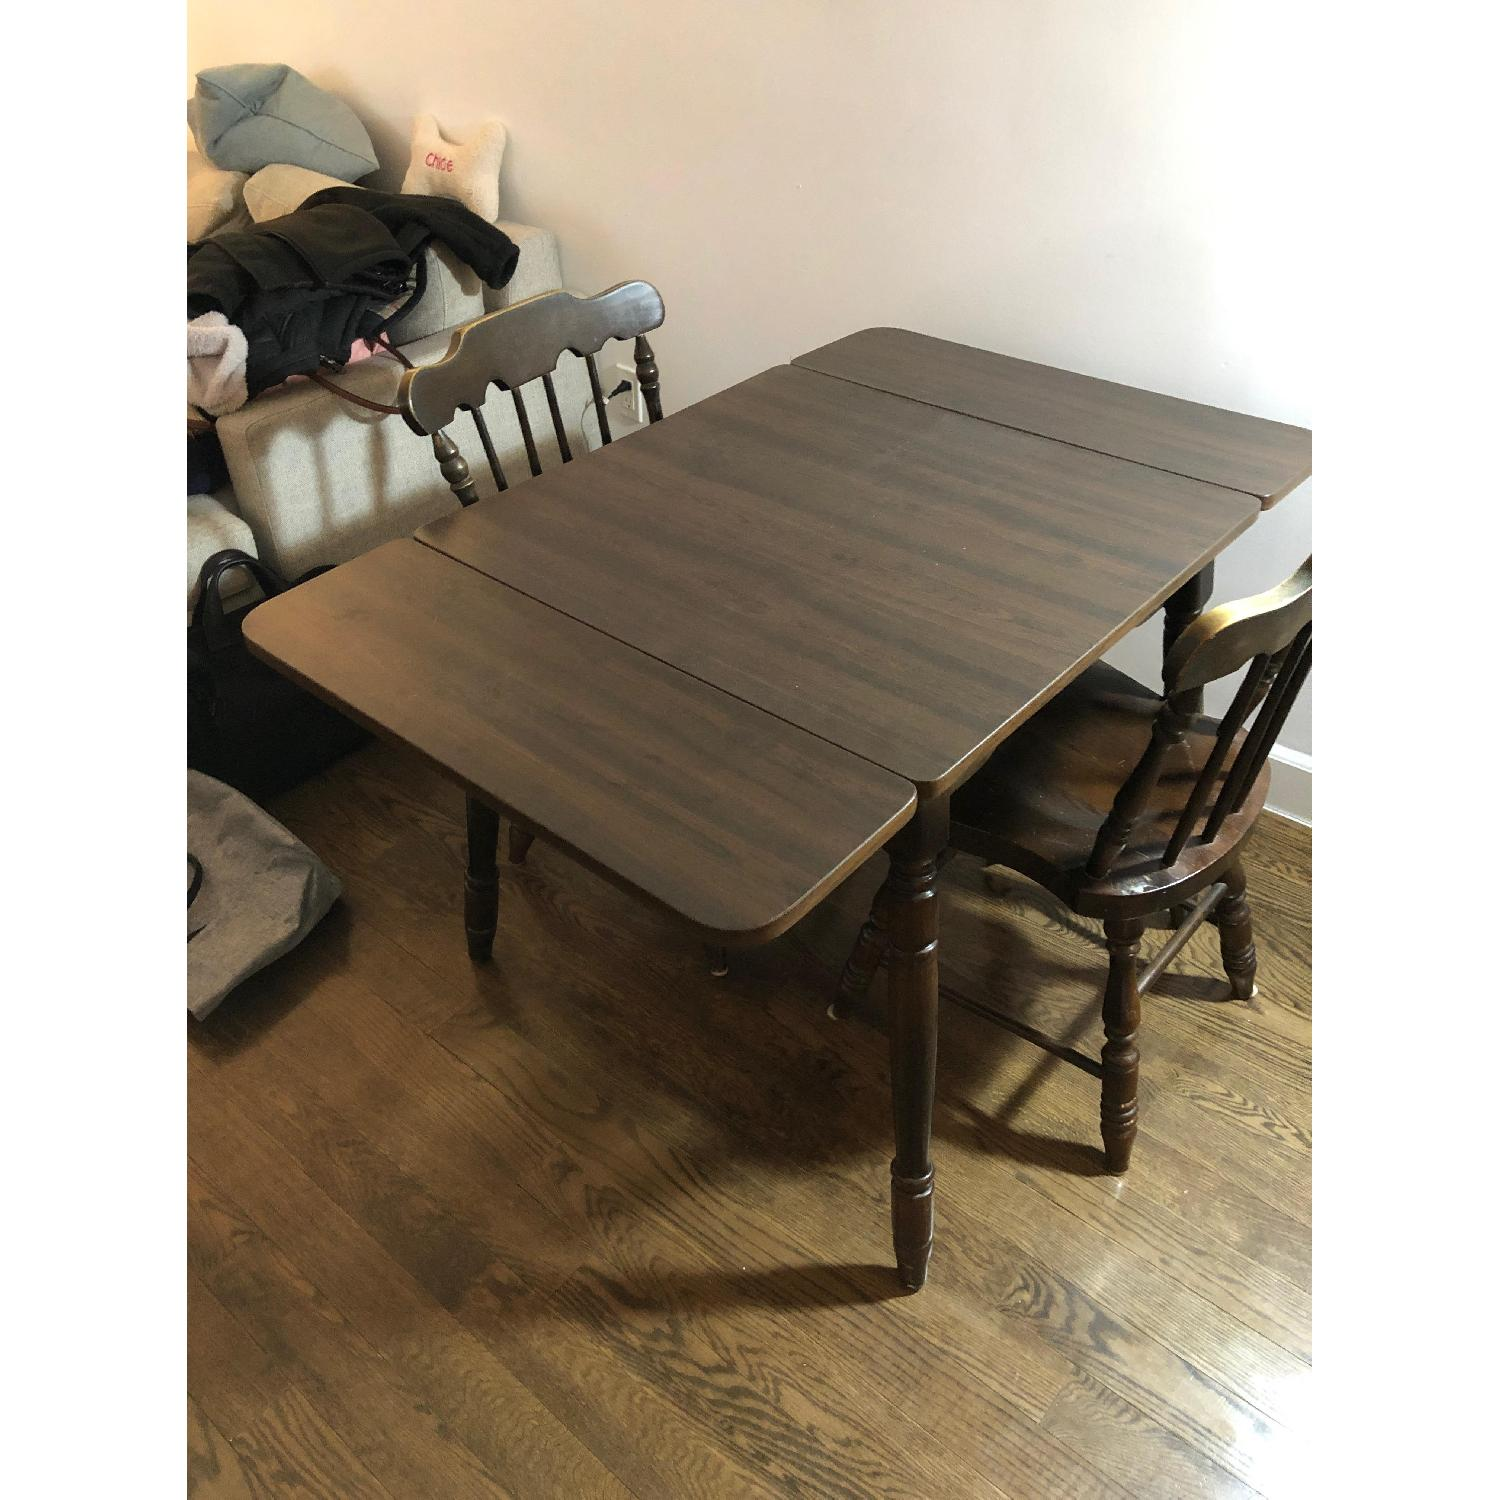 Wood Drop-Leaf Dining Table w/ 2 Chairs-1